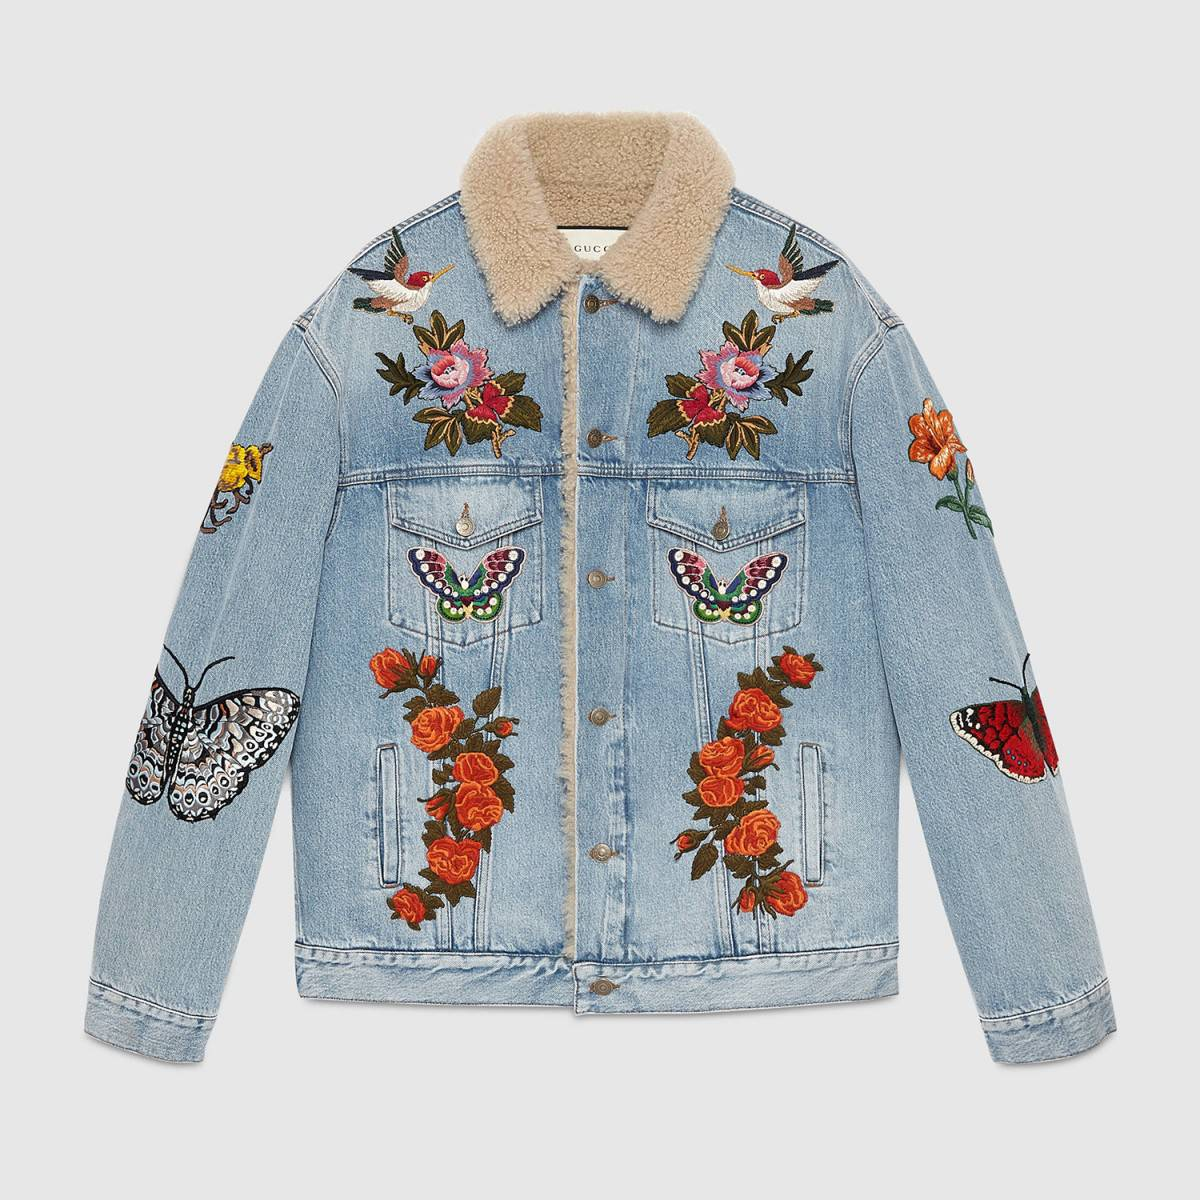 gucci-embroidered-denim-shearling-jacket-1-1200x1200